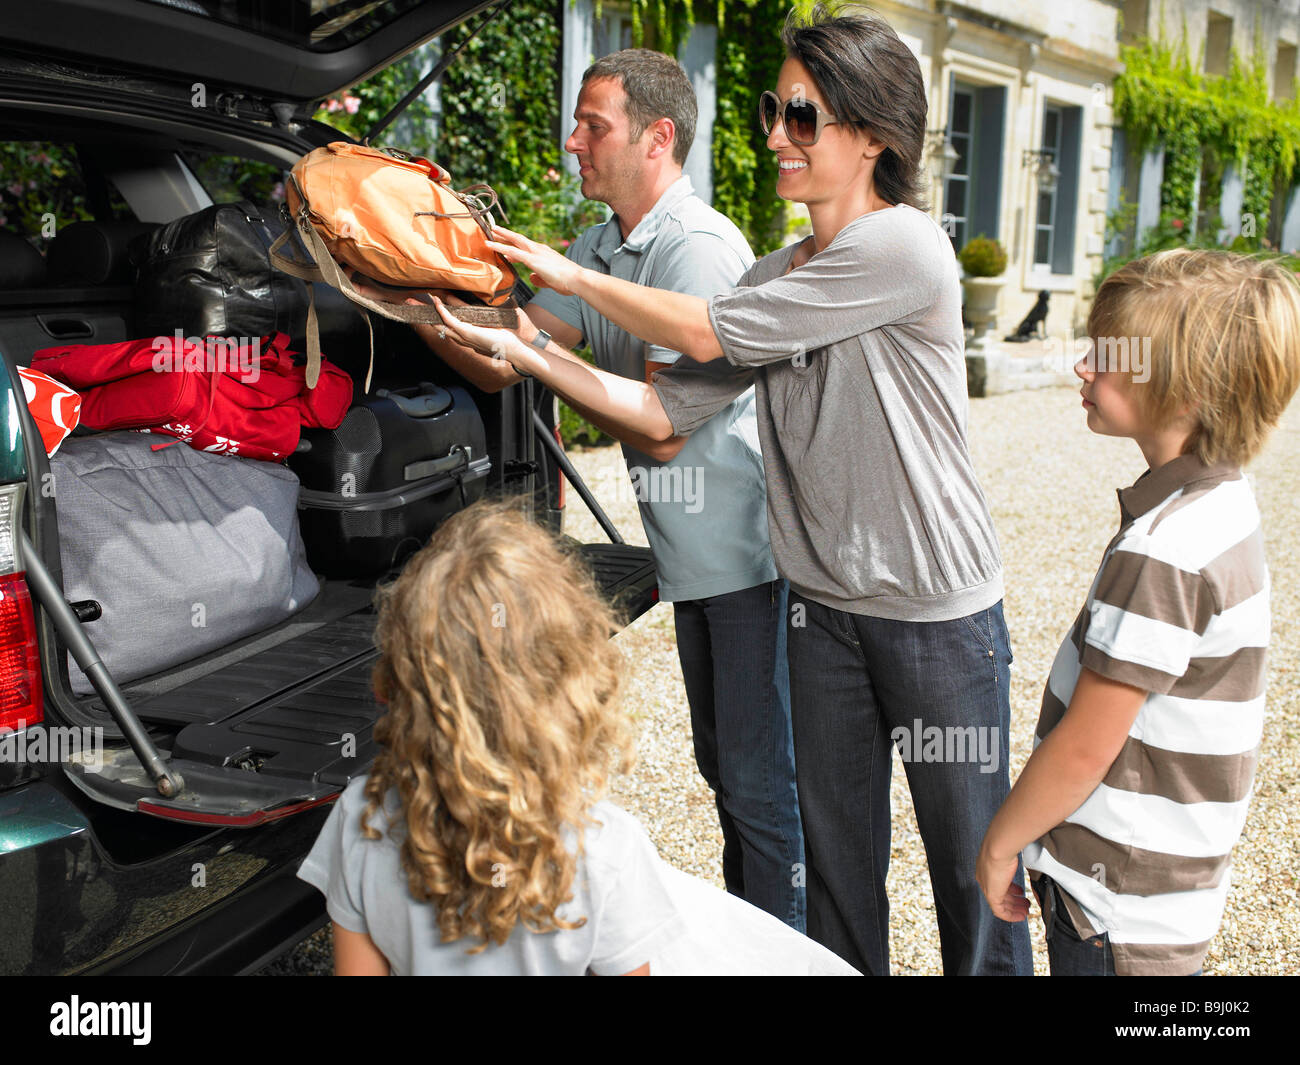 Family charging bags in the trunk - Stock Image